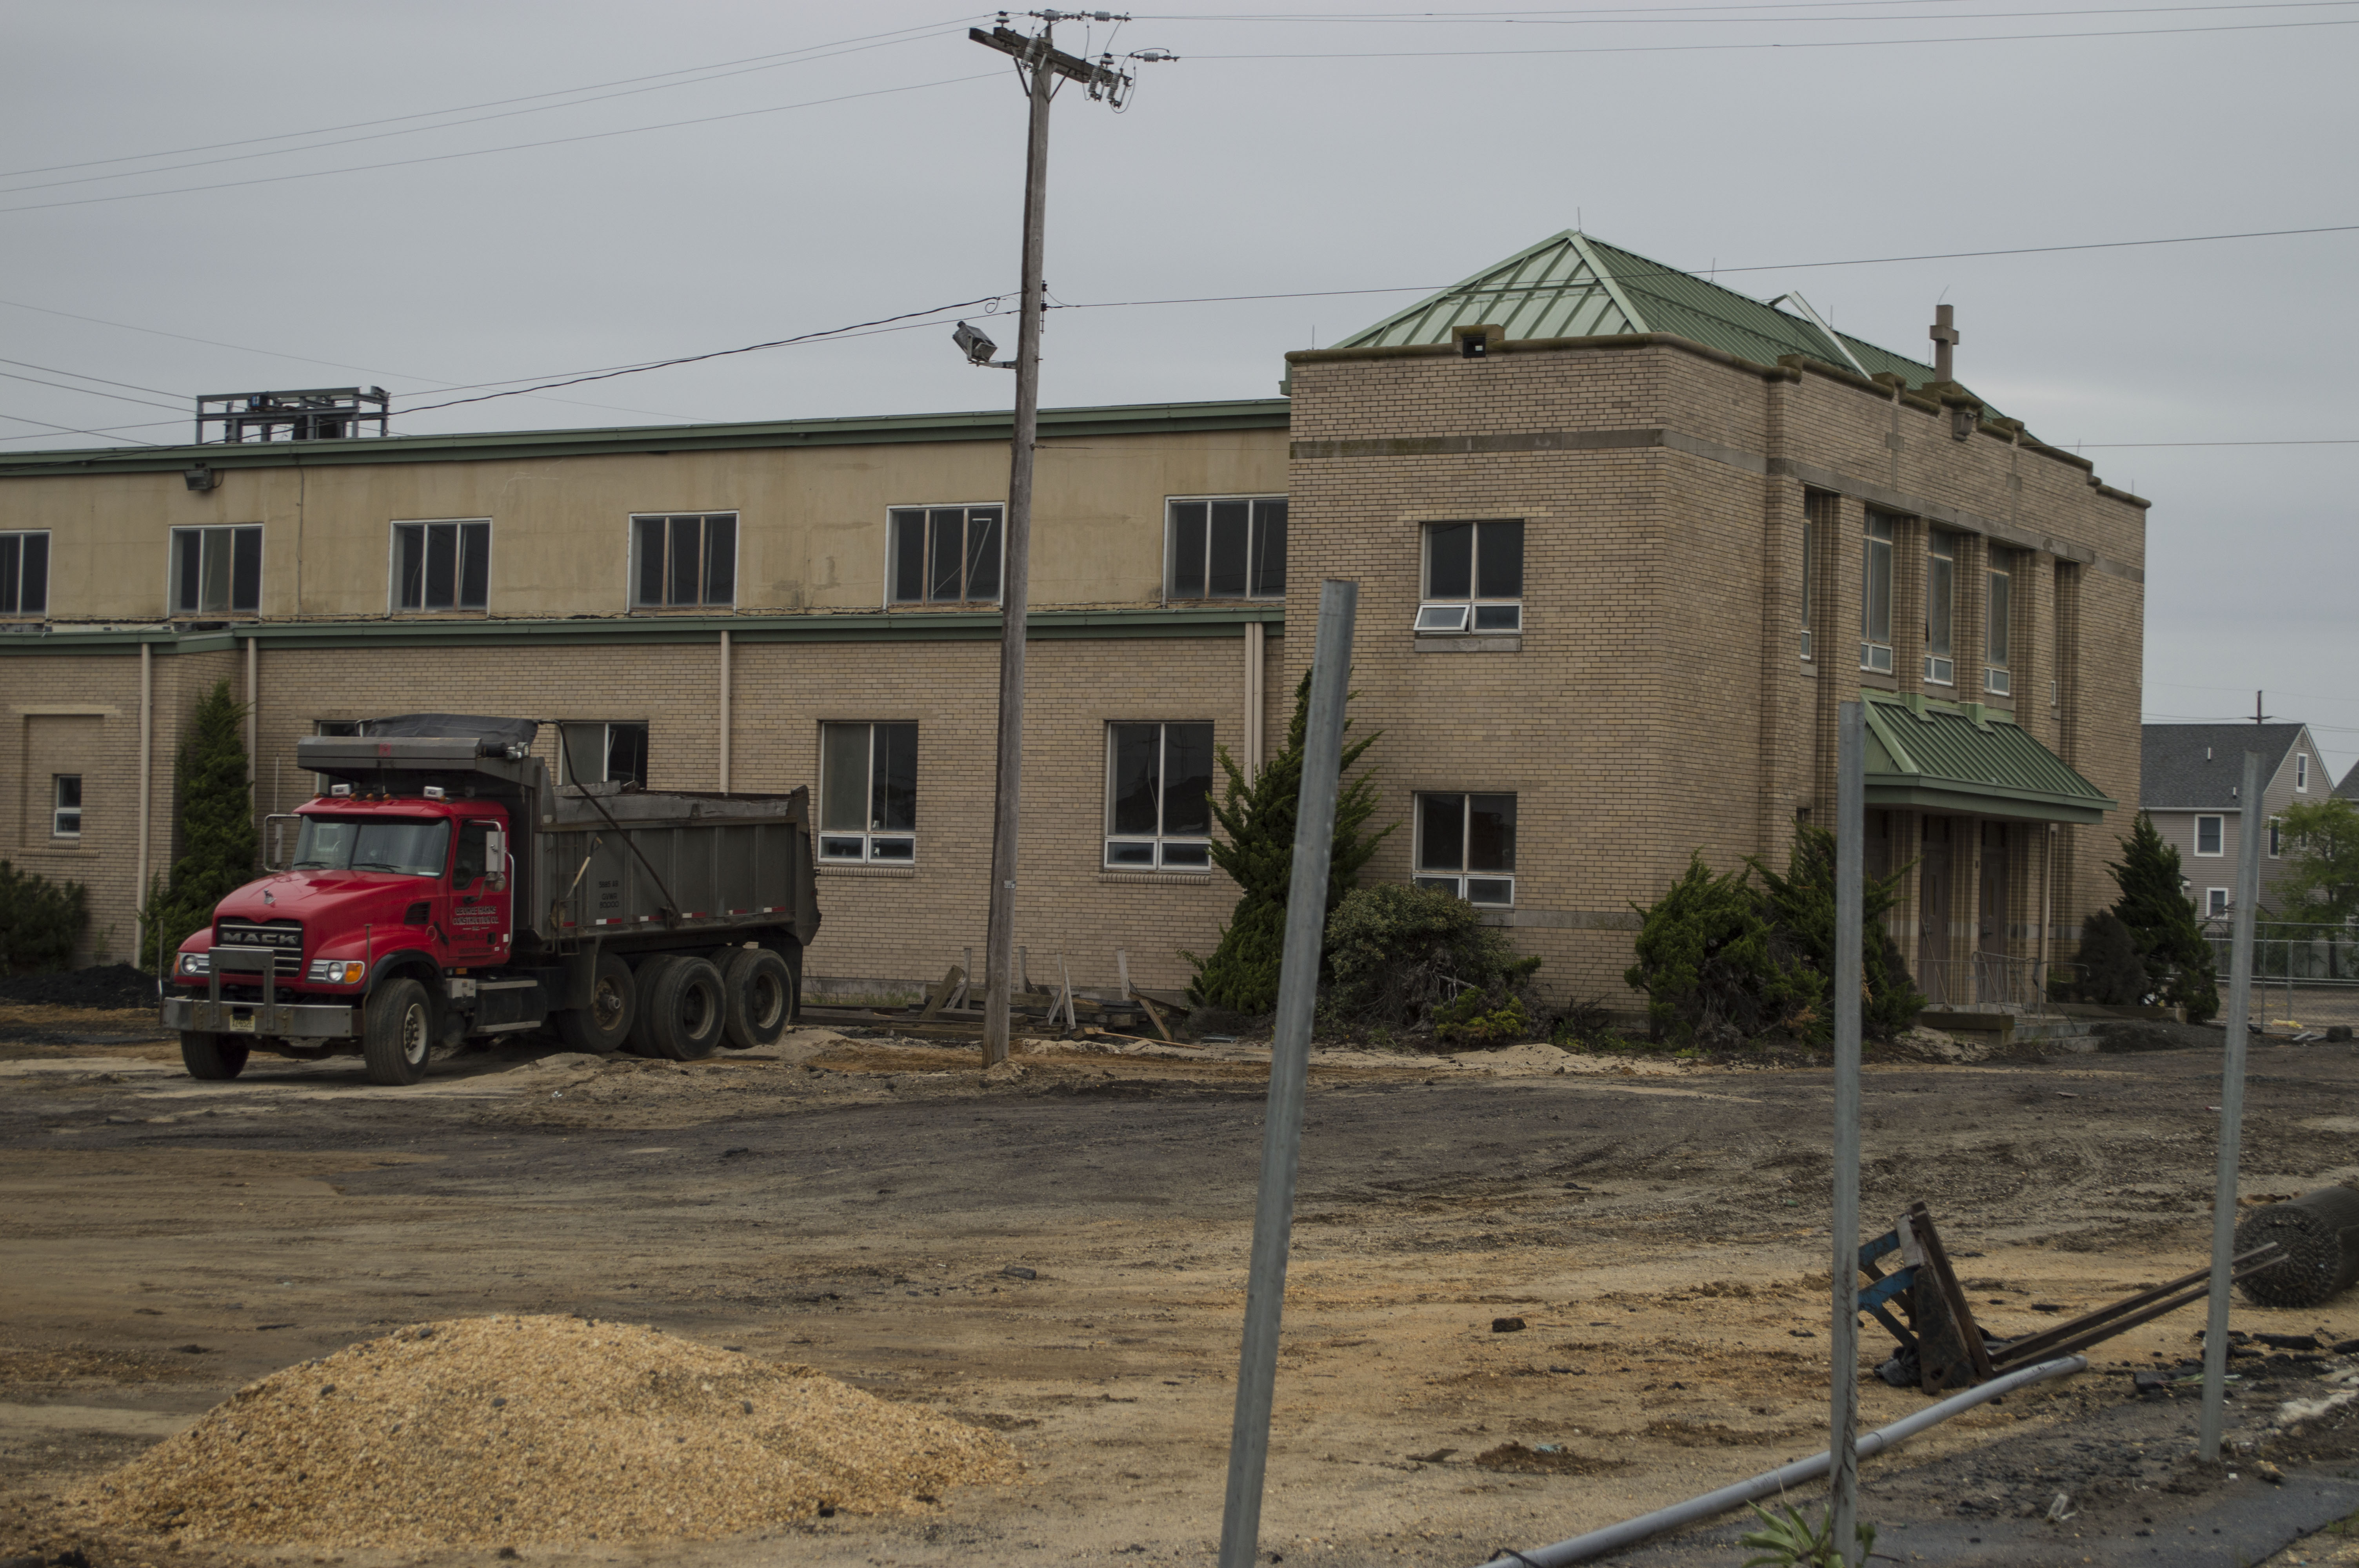 Demolition work underway at Our Lady of Peace church, Normandy Beach, Brick, NJ. (Photo: Daniel Nee)